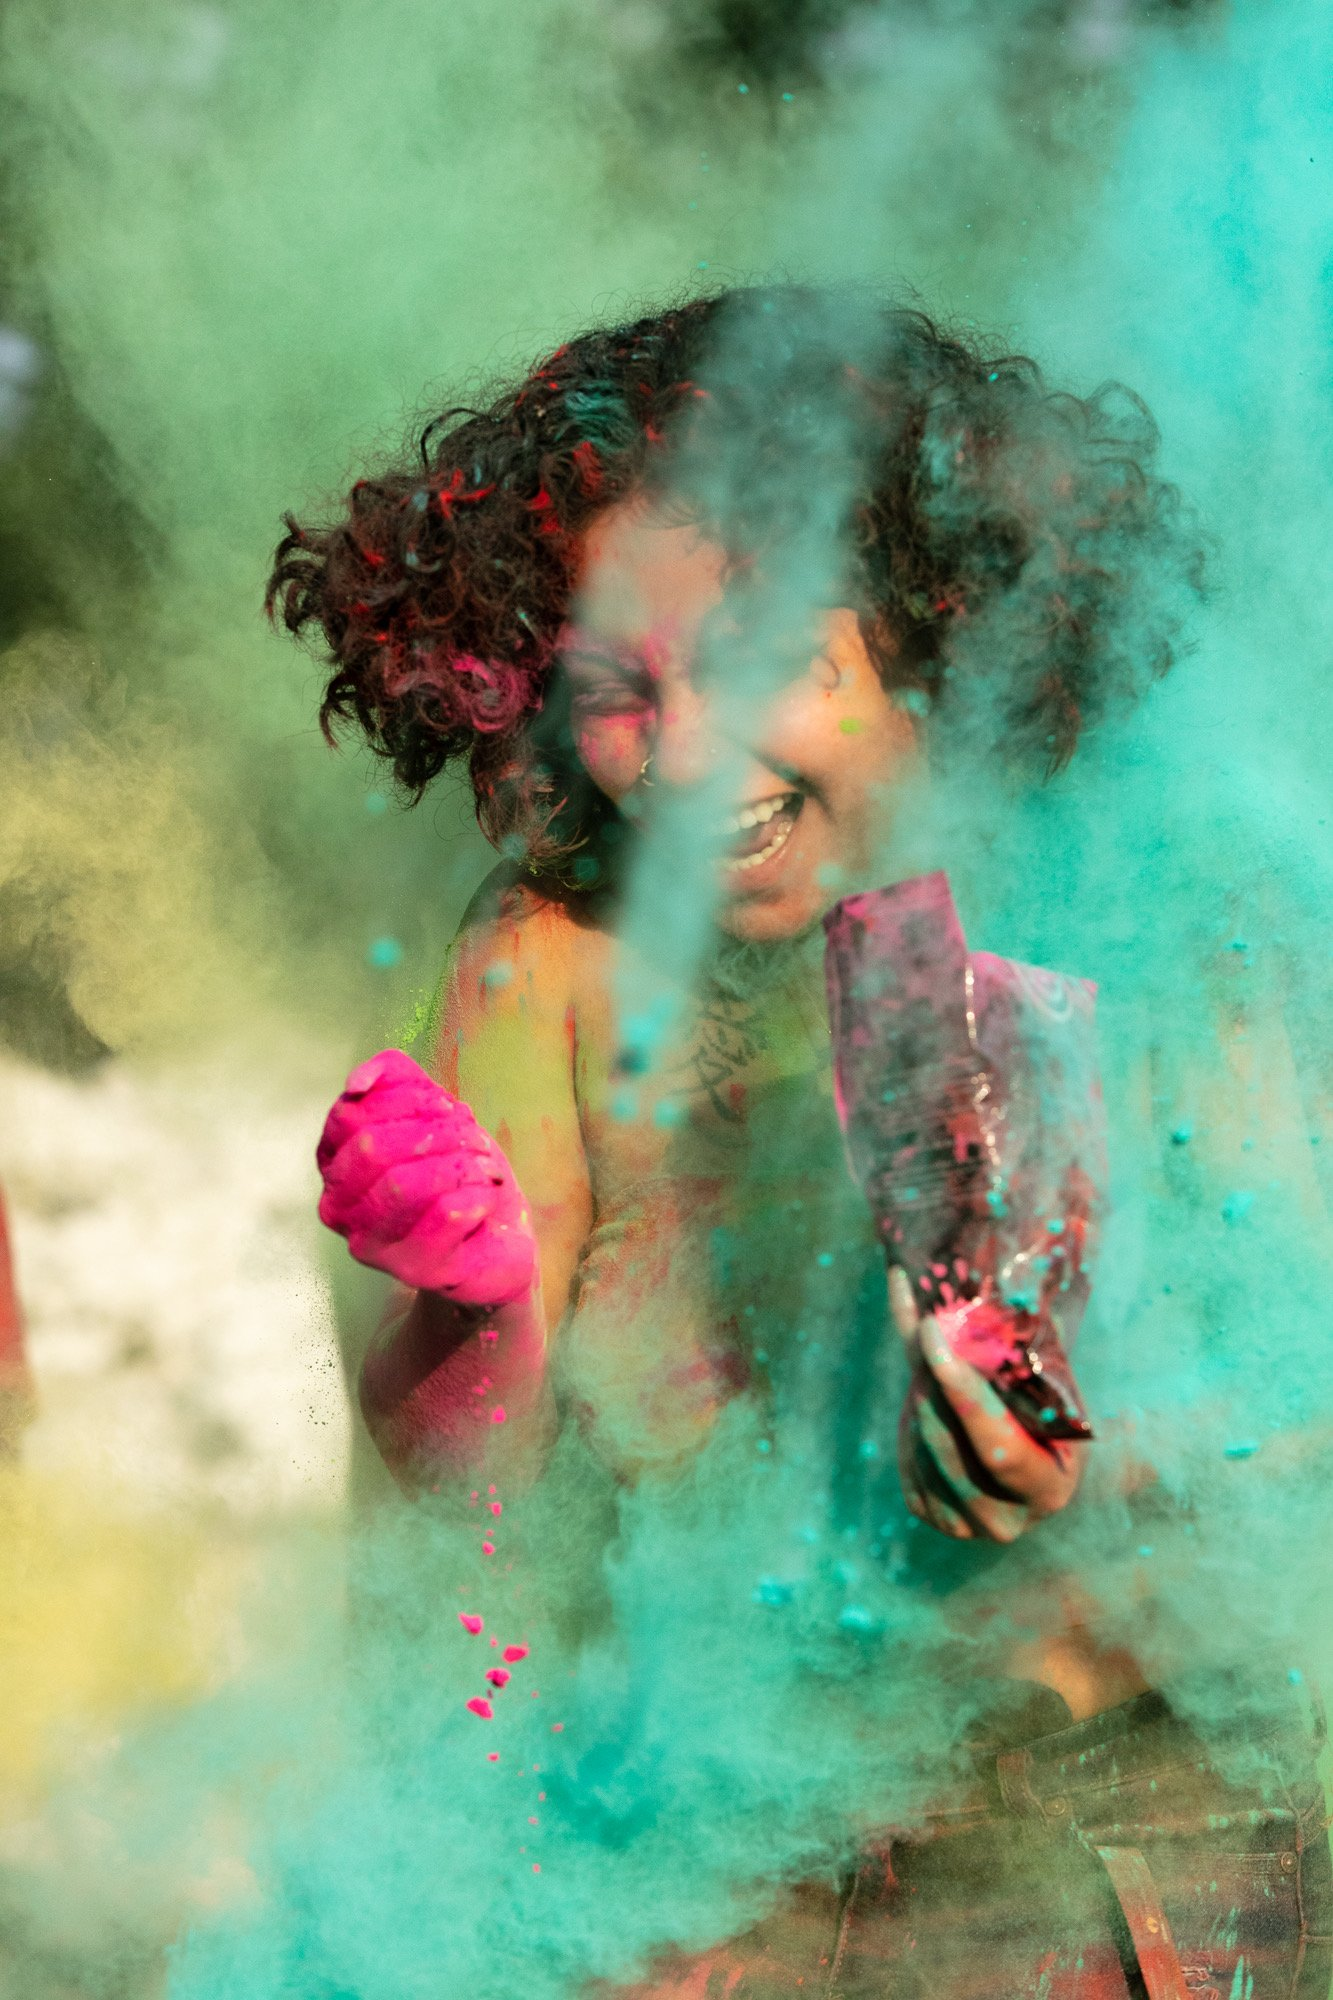 female student with curly hair smiles broadly as she's covered with blue powder paint.